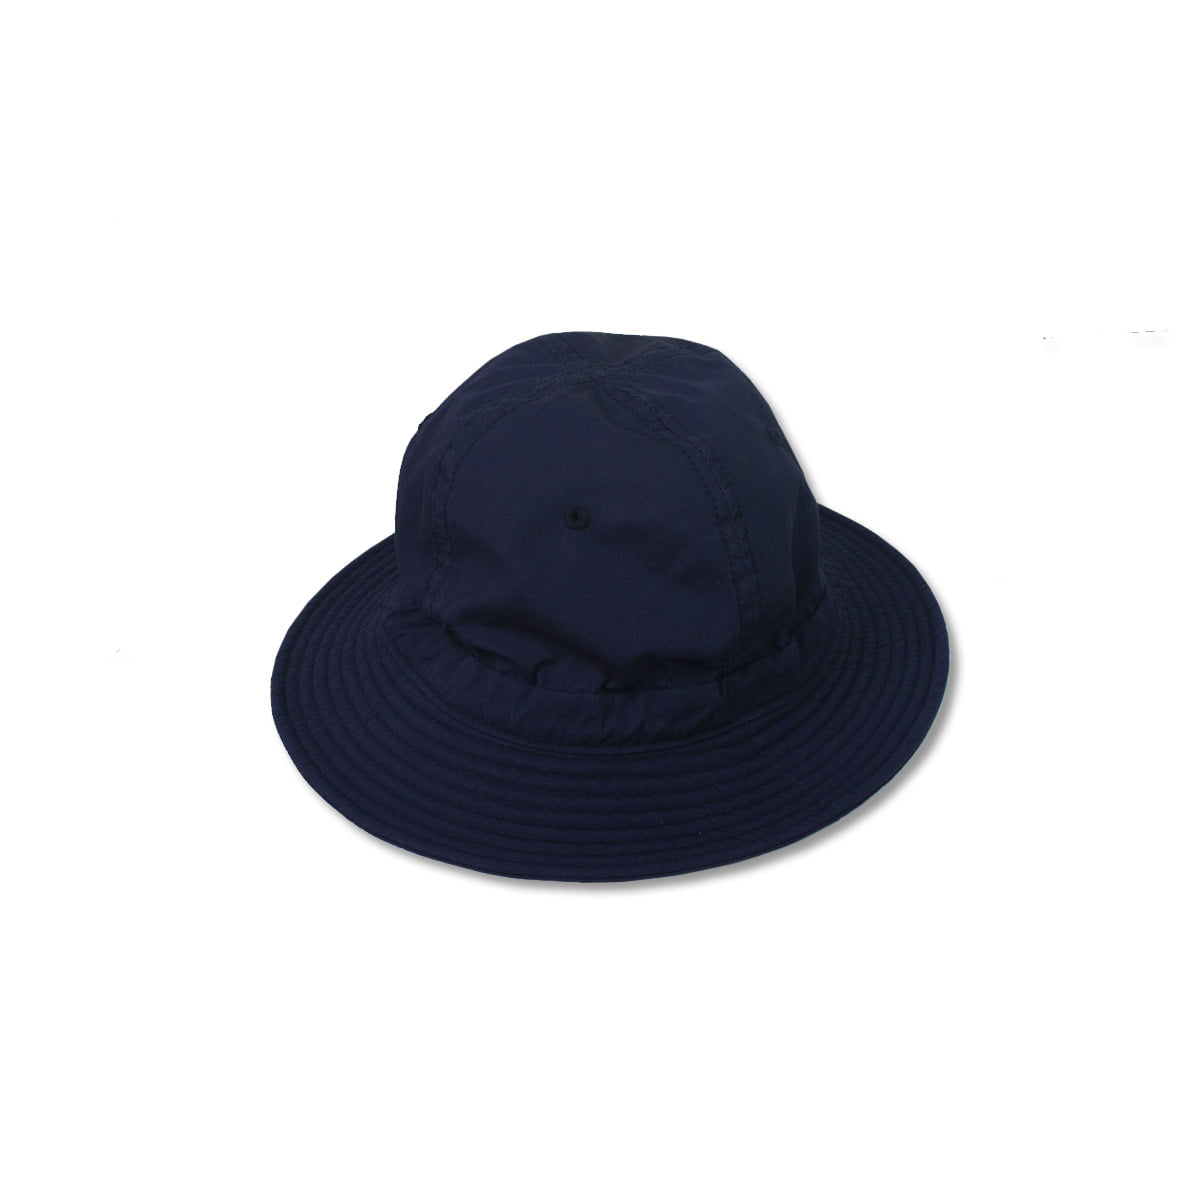 [DECHO] HUNTER HAT -VENTILE- 'NAVY'